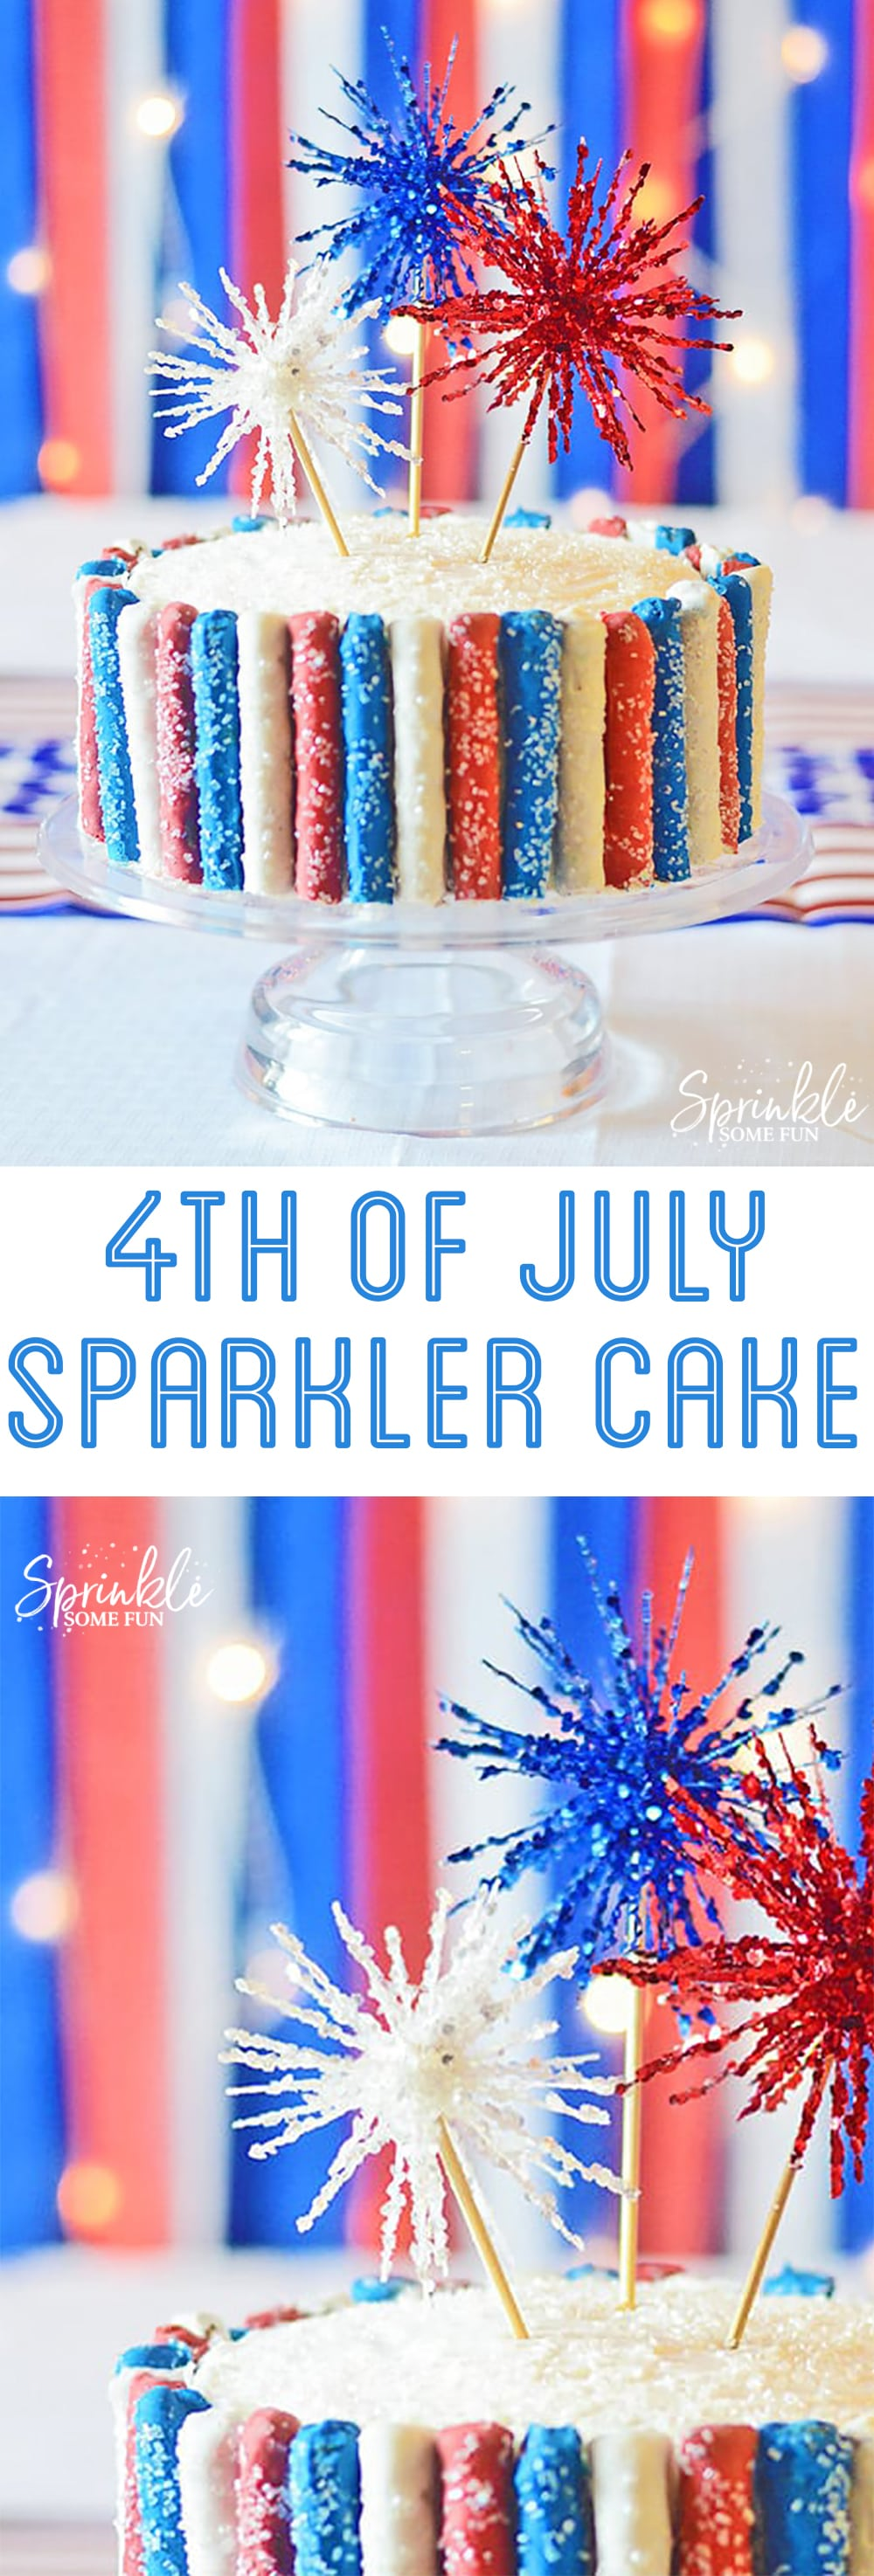 Sparkler Cake for 4th of July